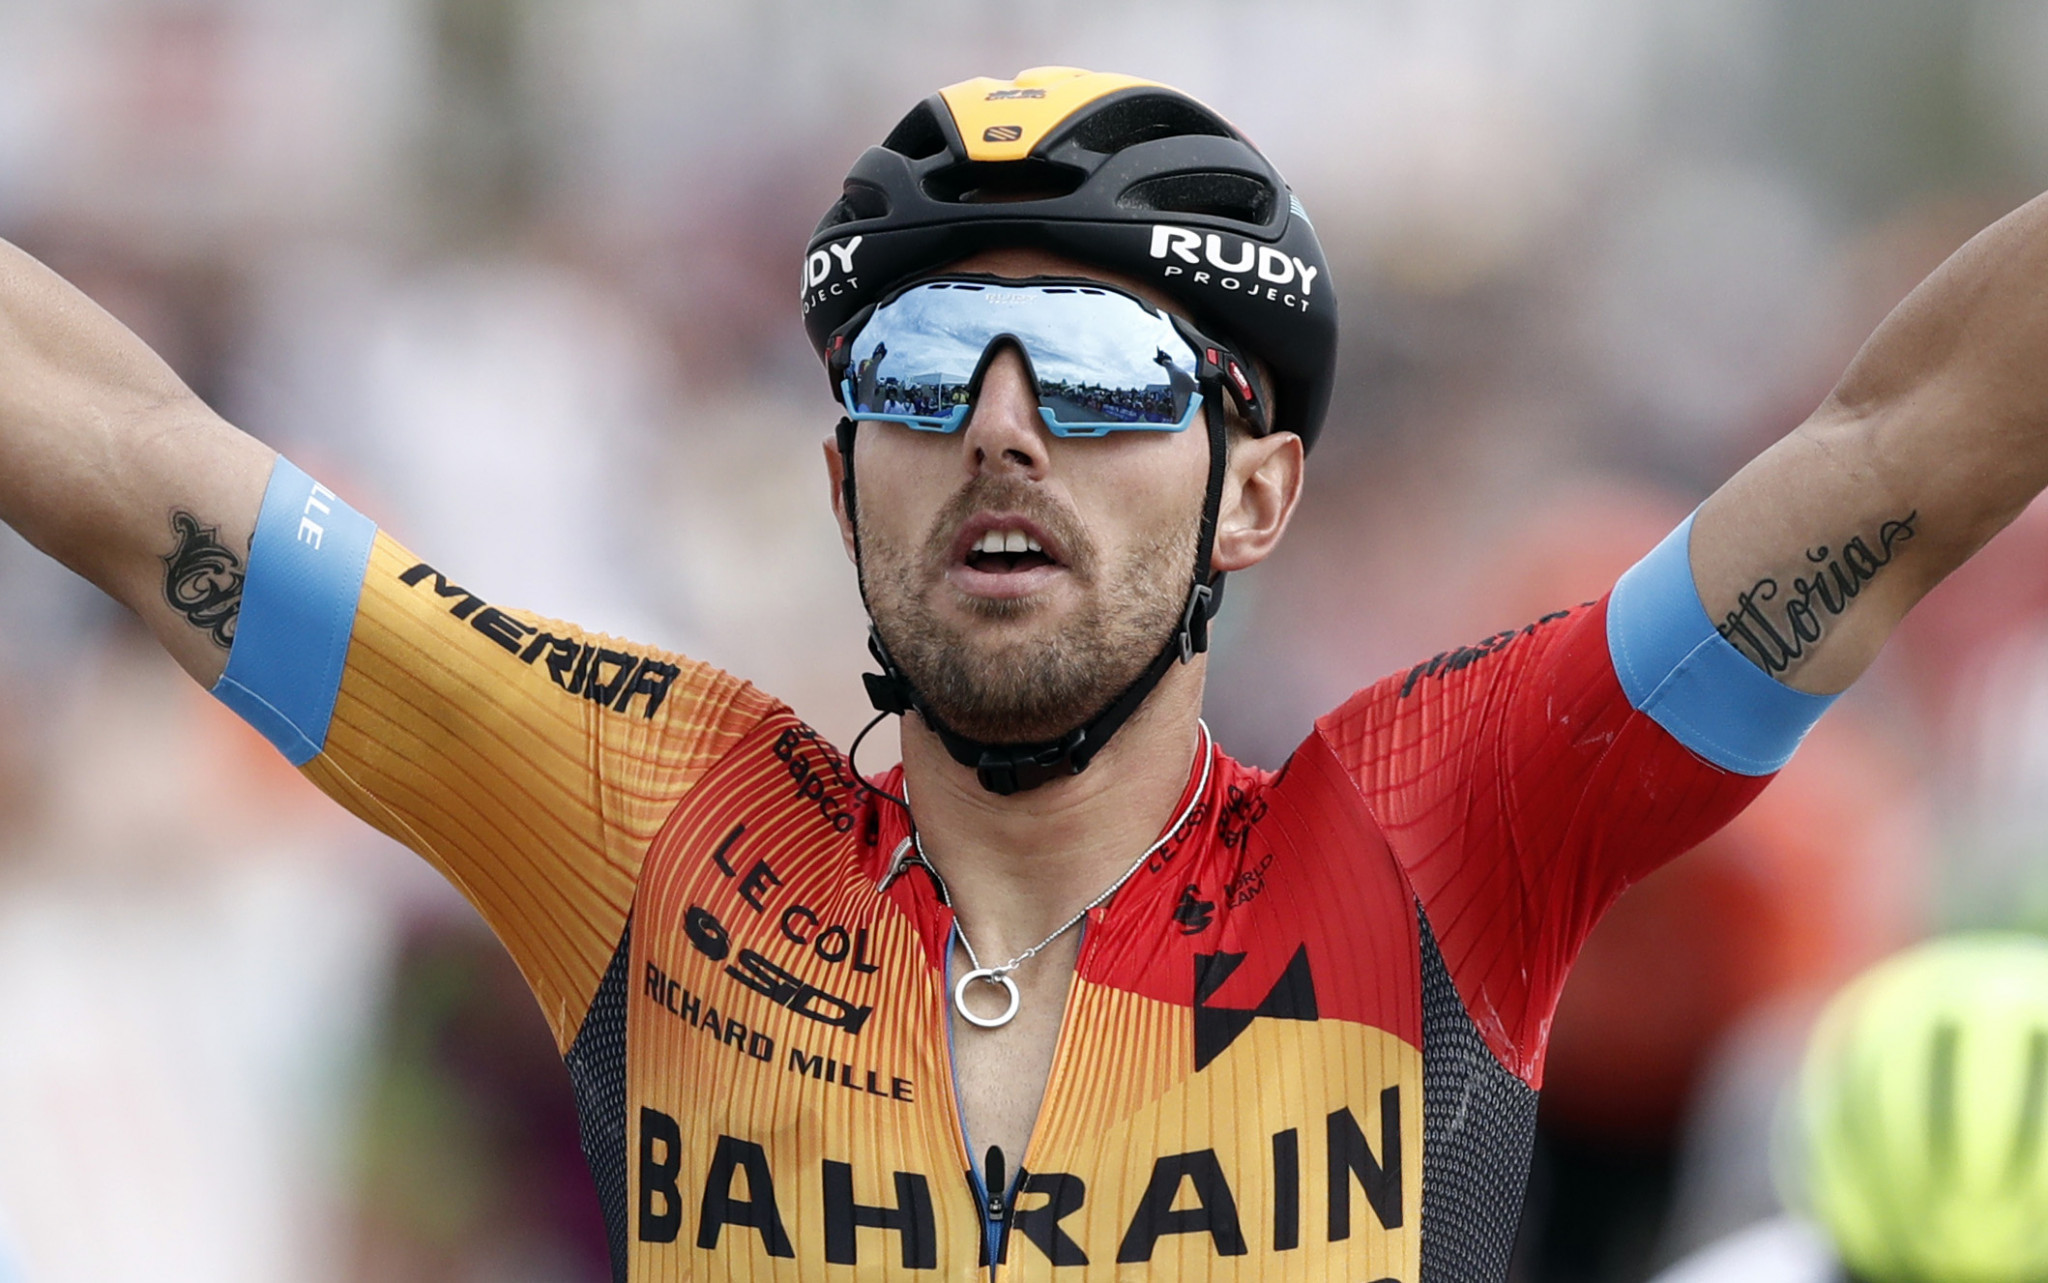 Colbrelli and Mohorič help Bahrain Victorious occupy top two spots on Benelux Tour